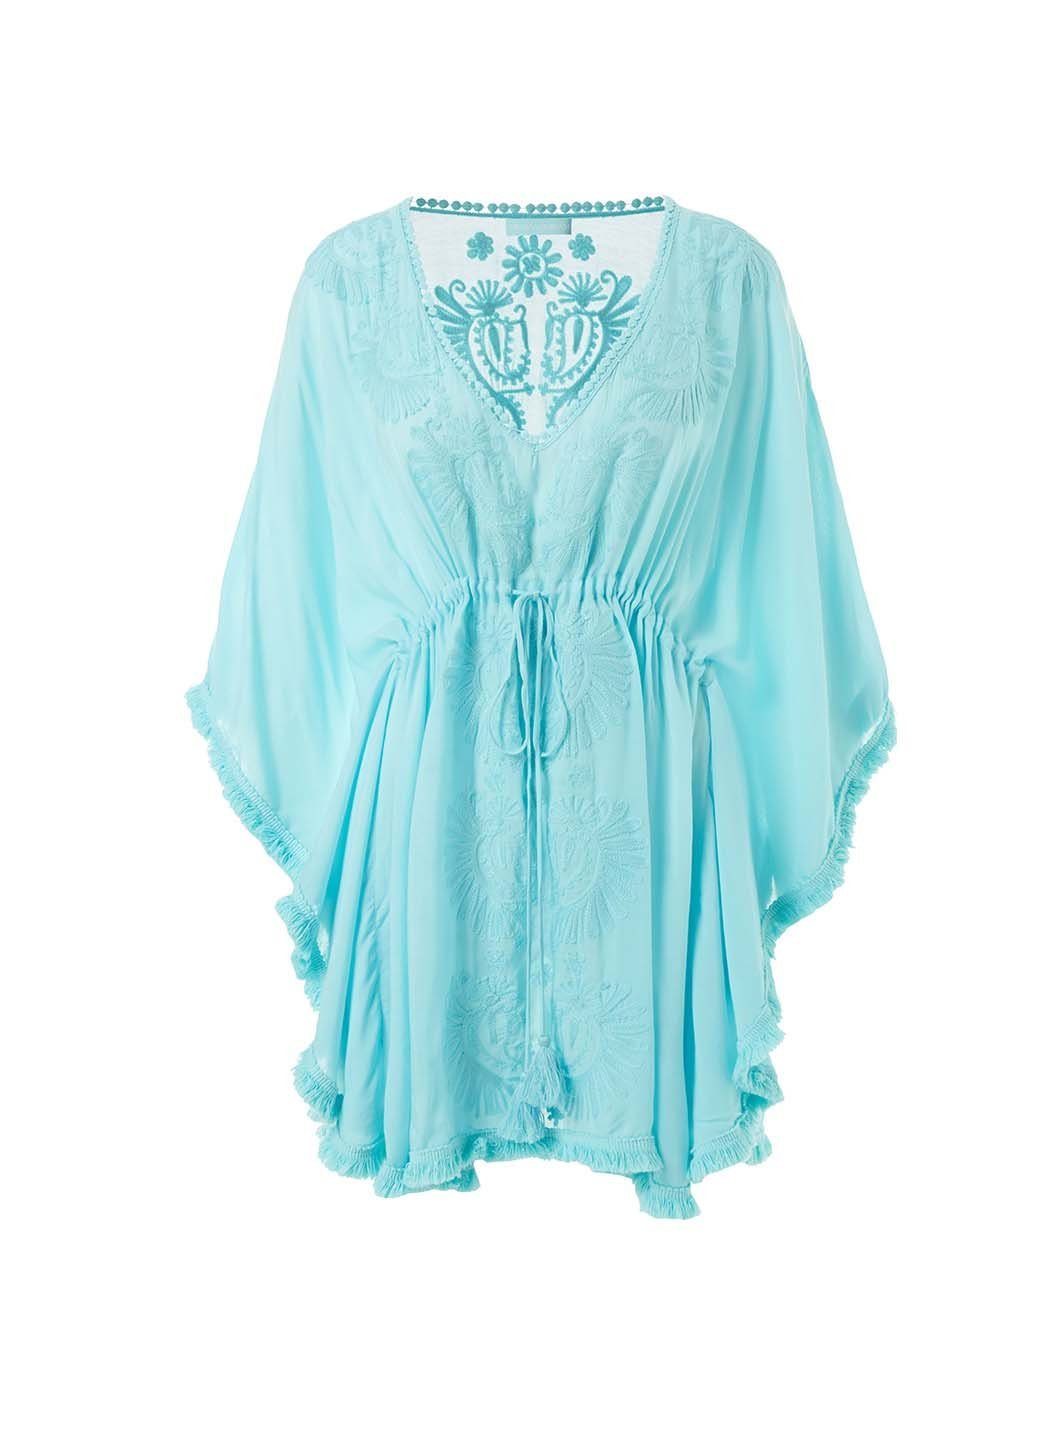 irene sky embroidered classic kaftan 2019_with_cord_ends_removed